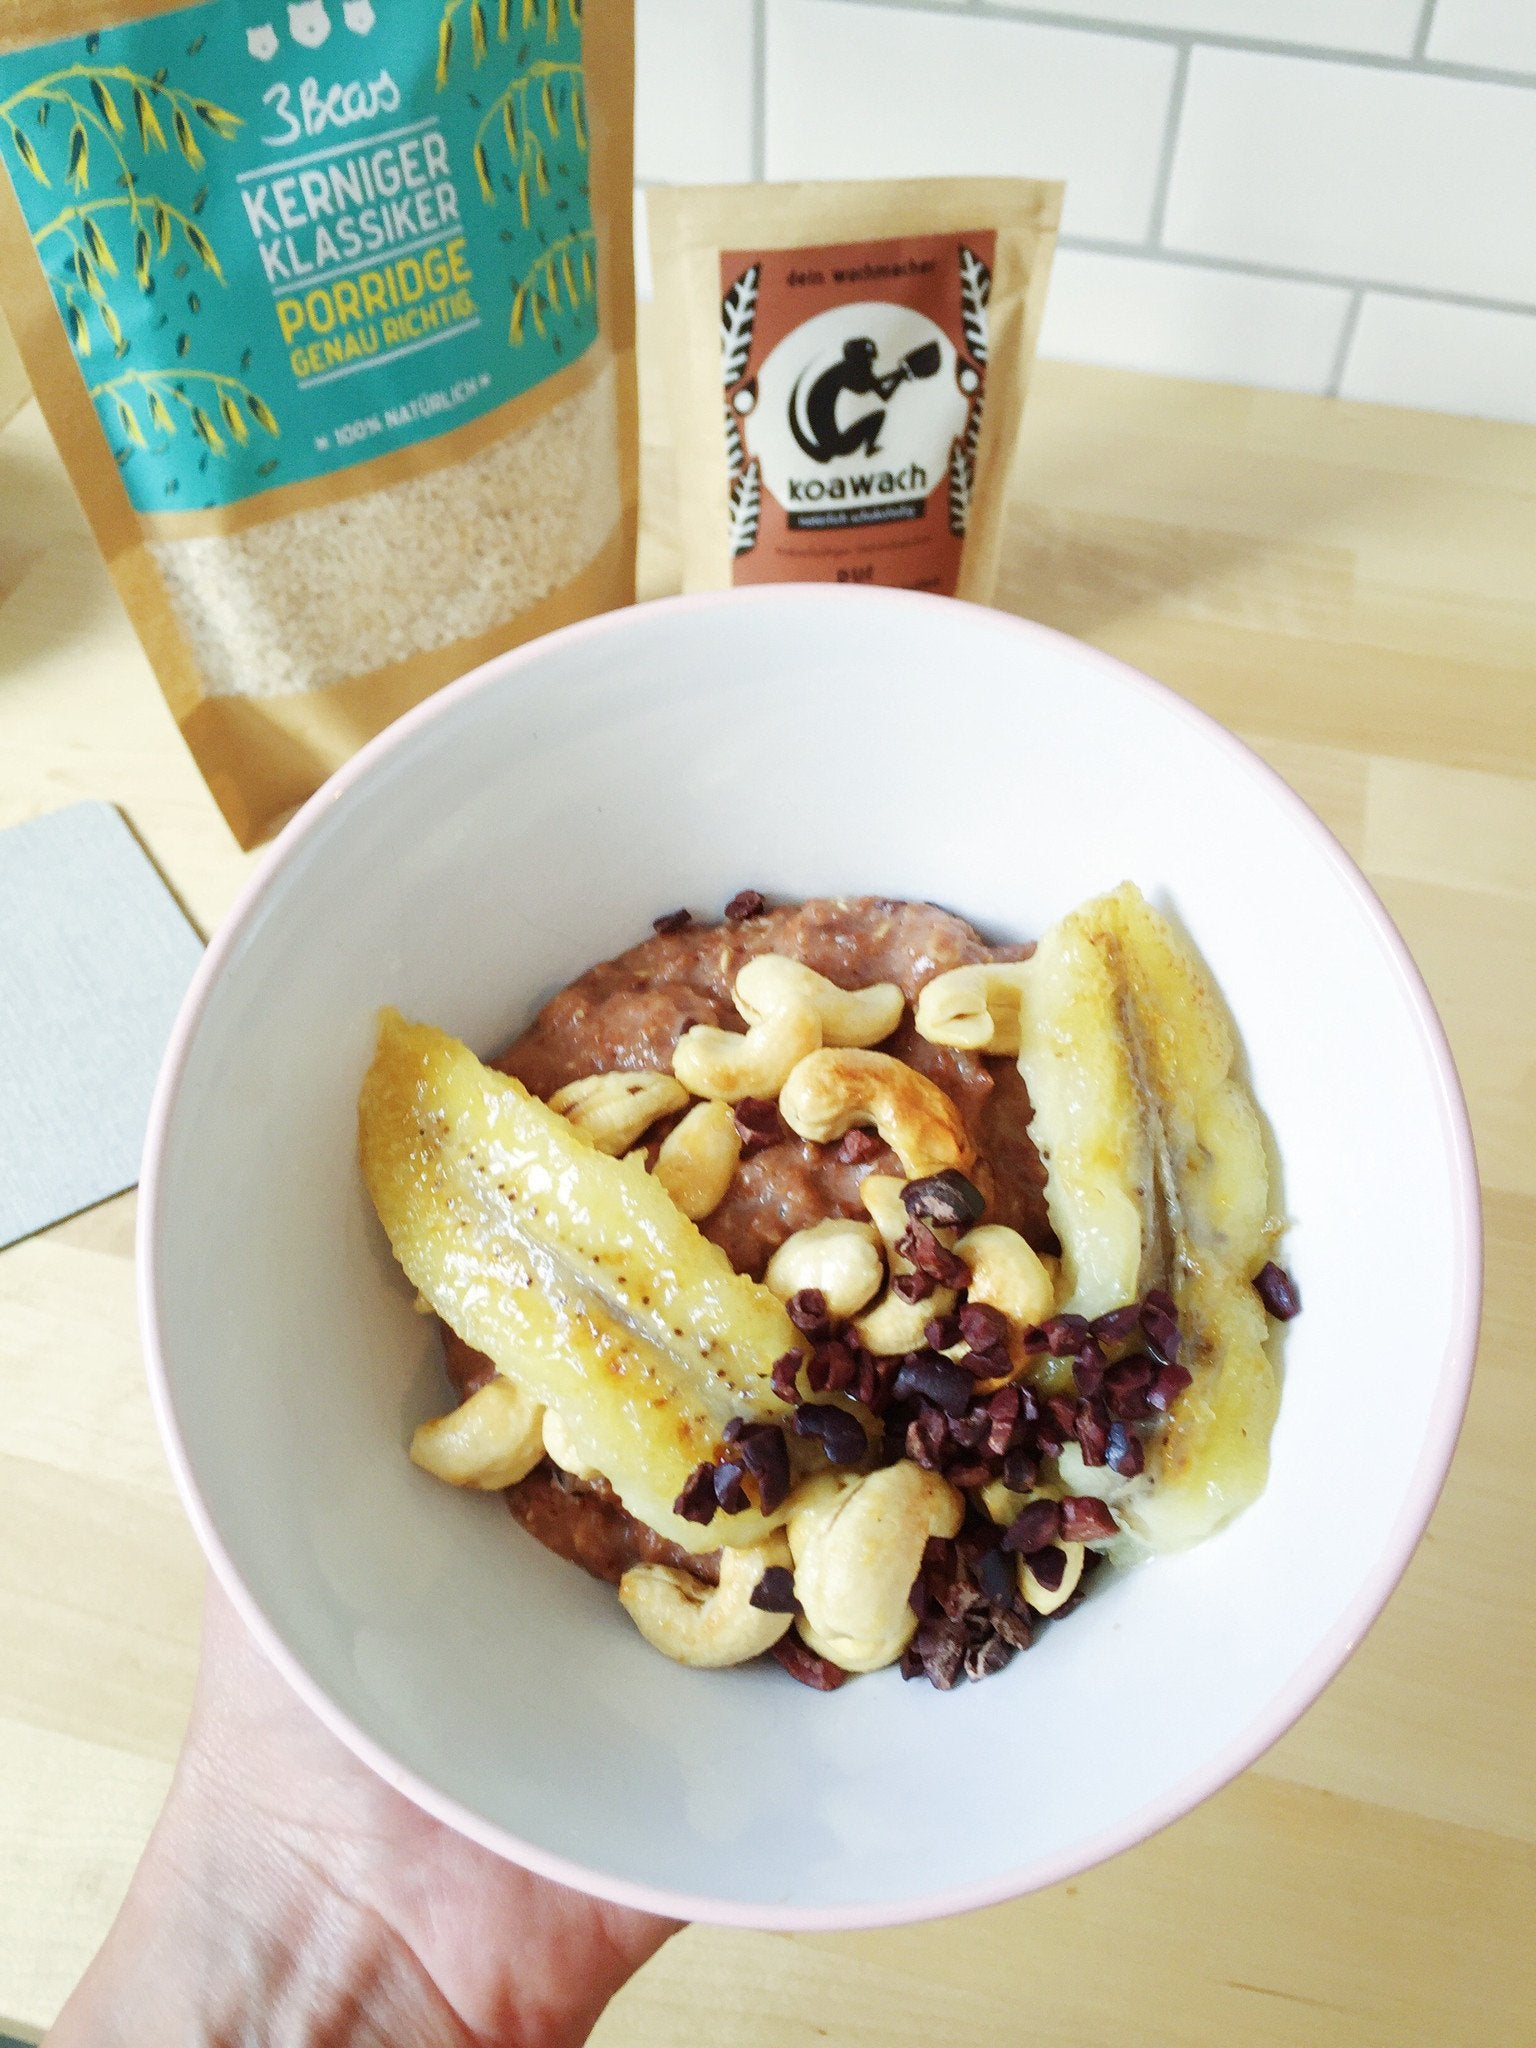 Porridge with caramel bananas